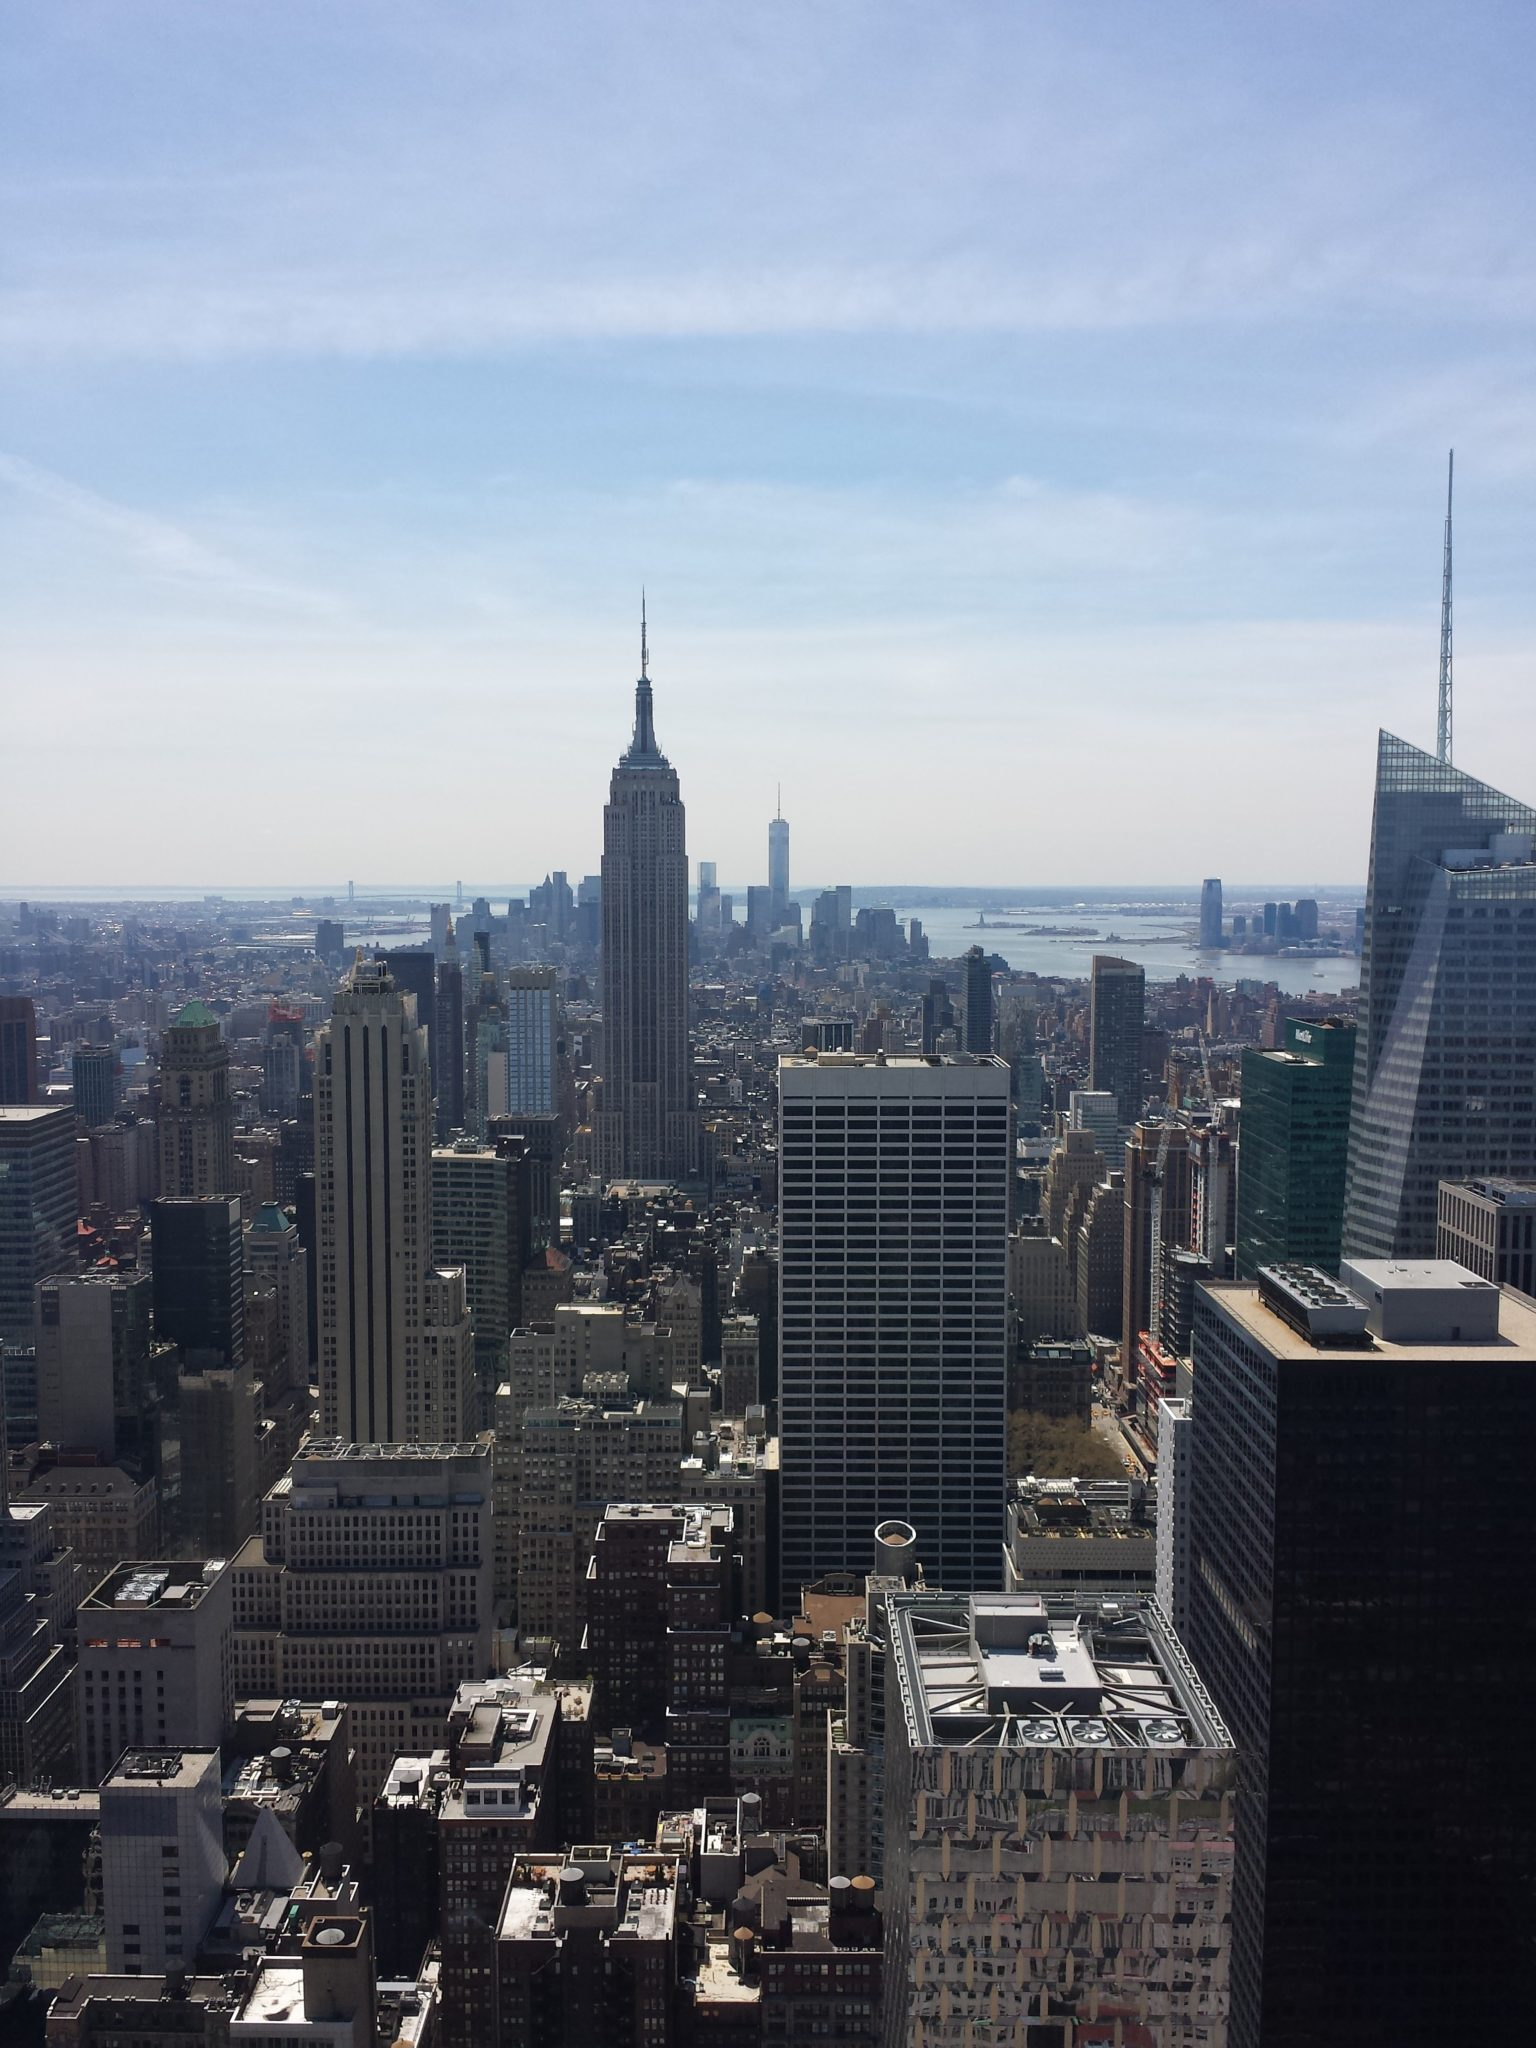 Empire state building Vue top of the rock rockfeller center new york